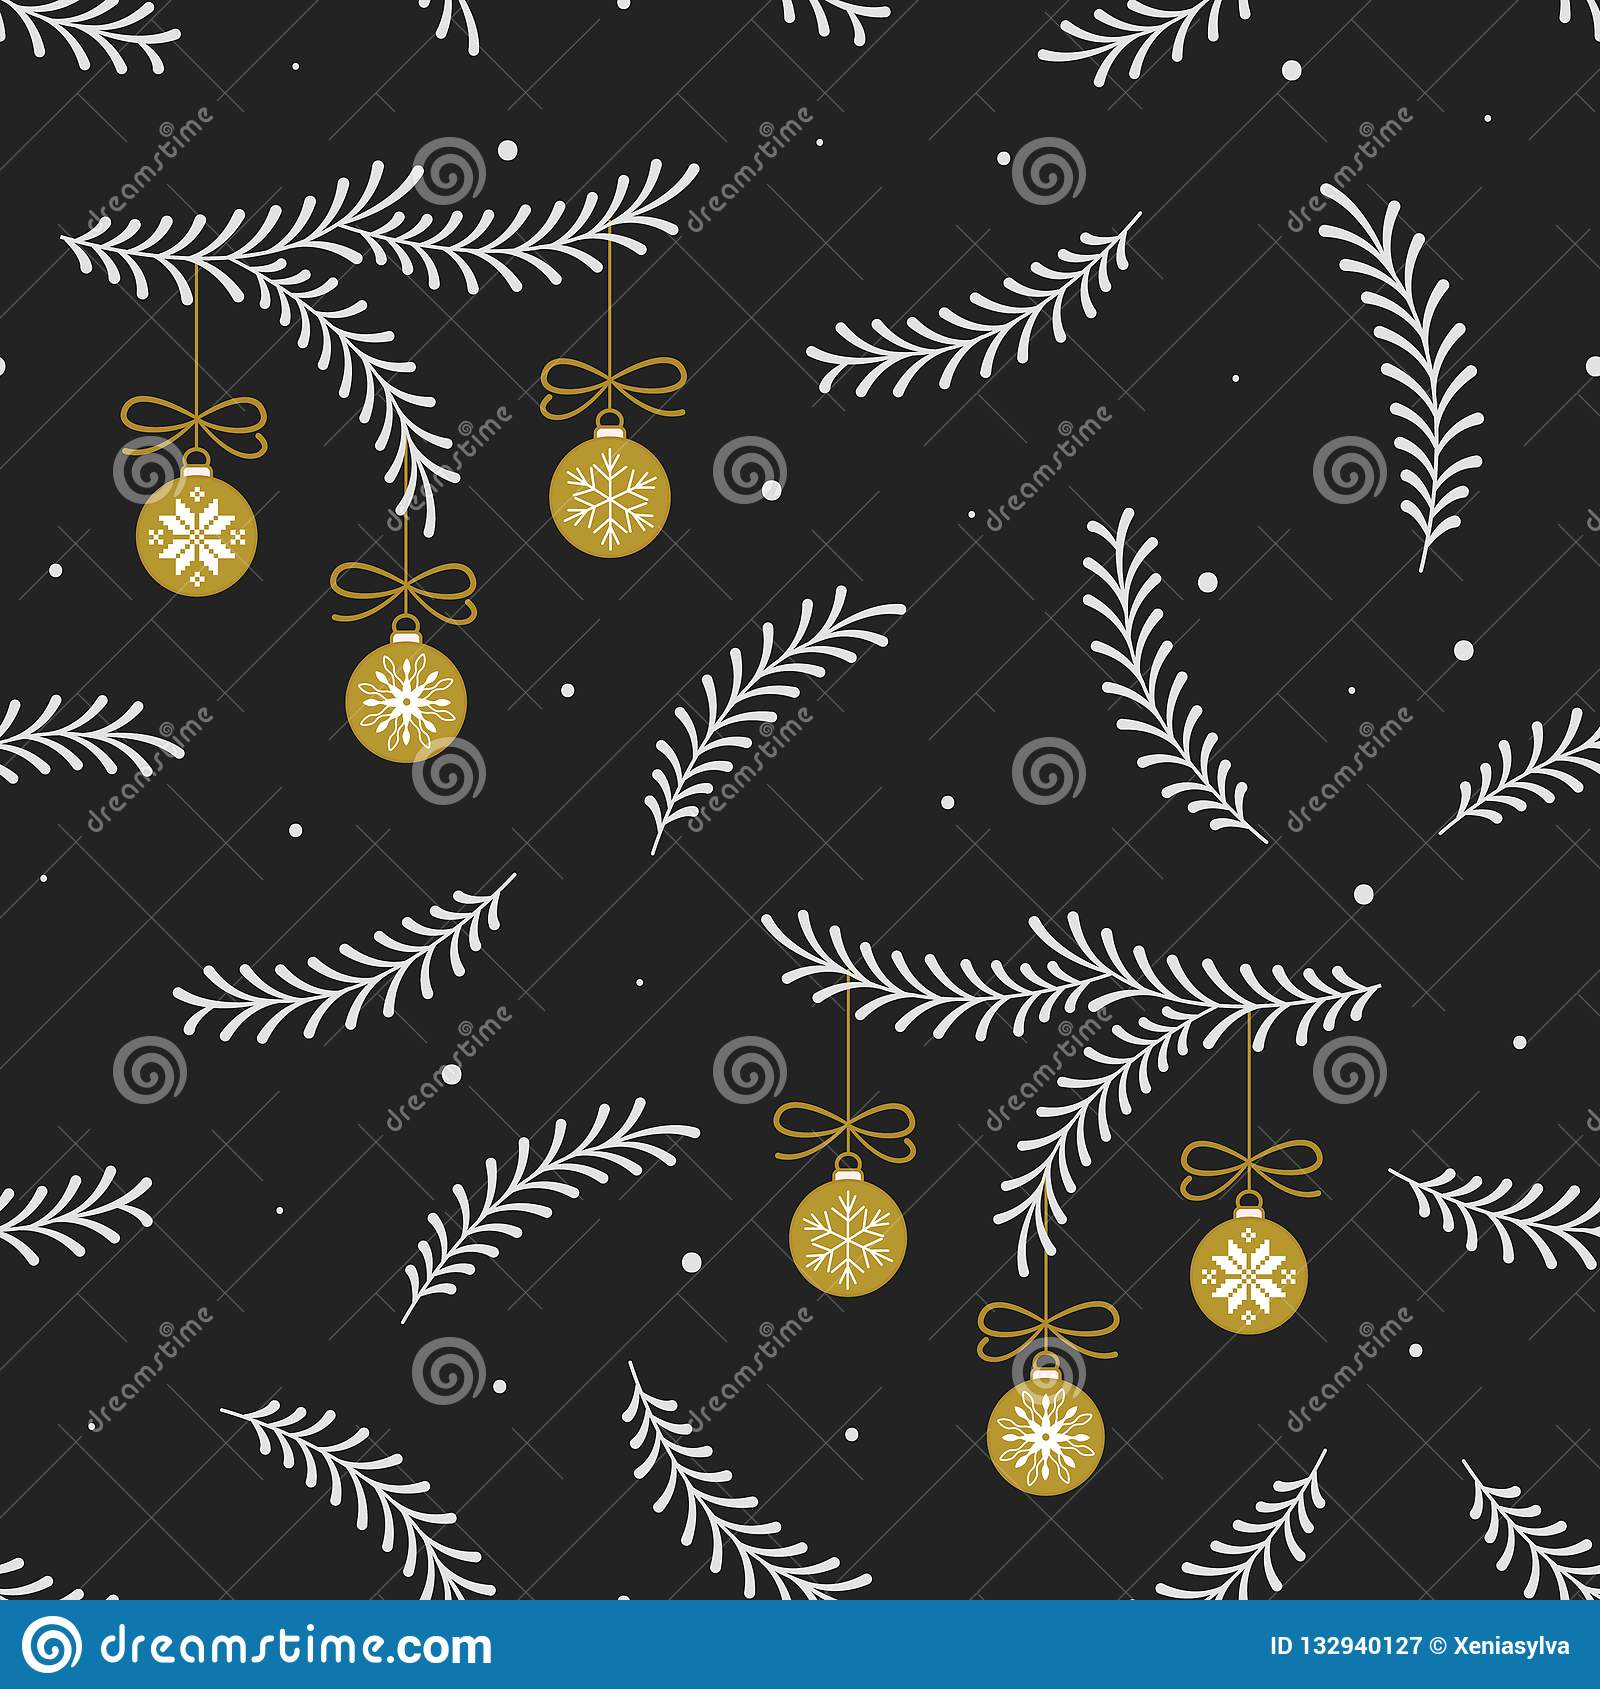 Vector seamless pattern with white сhristmas tree branches and gold christmas balls on black background.